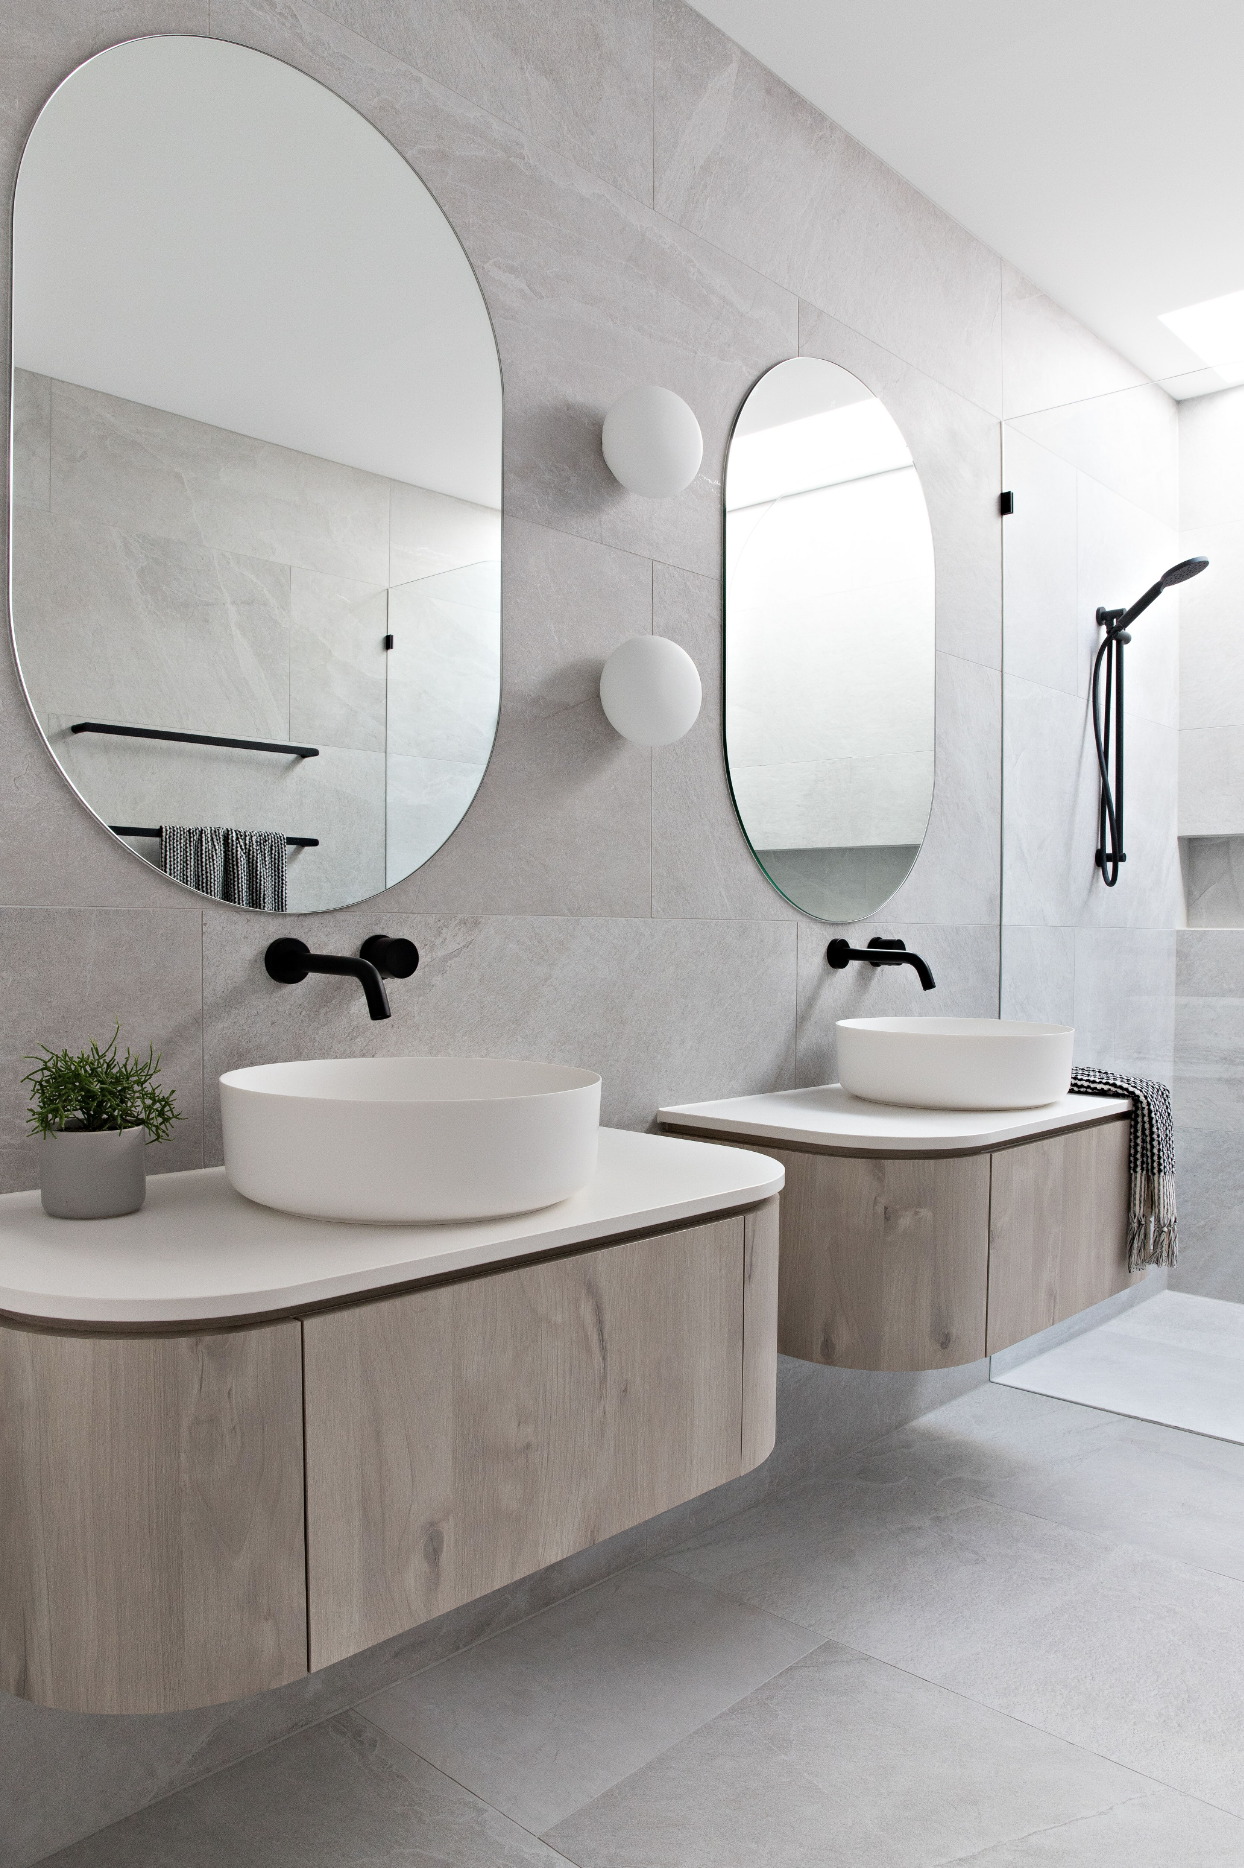 Curved Mirrors Want To Make A Statement In A Bathroom Or Space And Give It That Designer Edge You Bathroom Interior Round Mirror Bathroom Vanity Inspiration